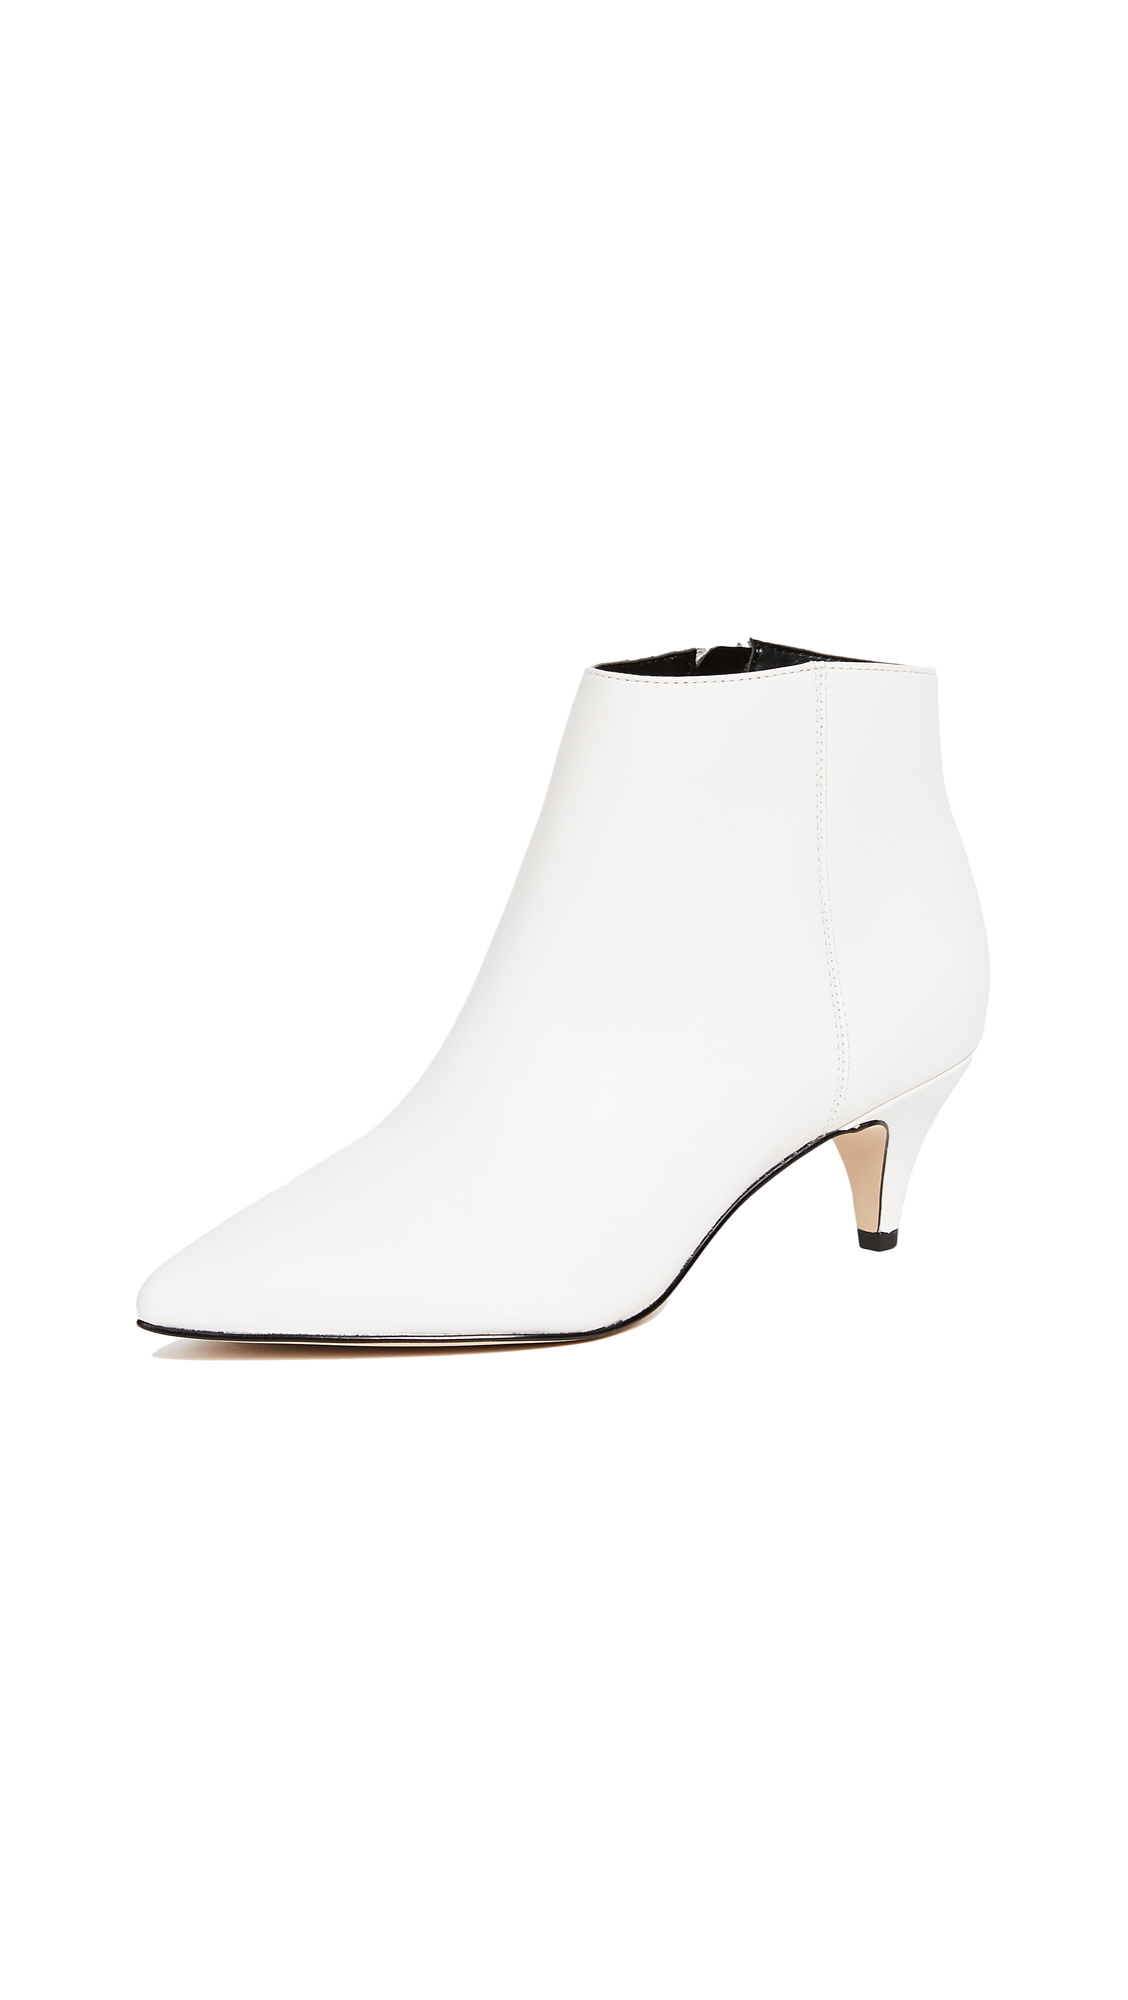 Sam Edelman Kinzey Booties - Bright White